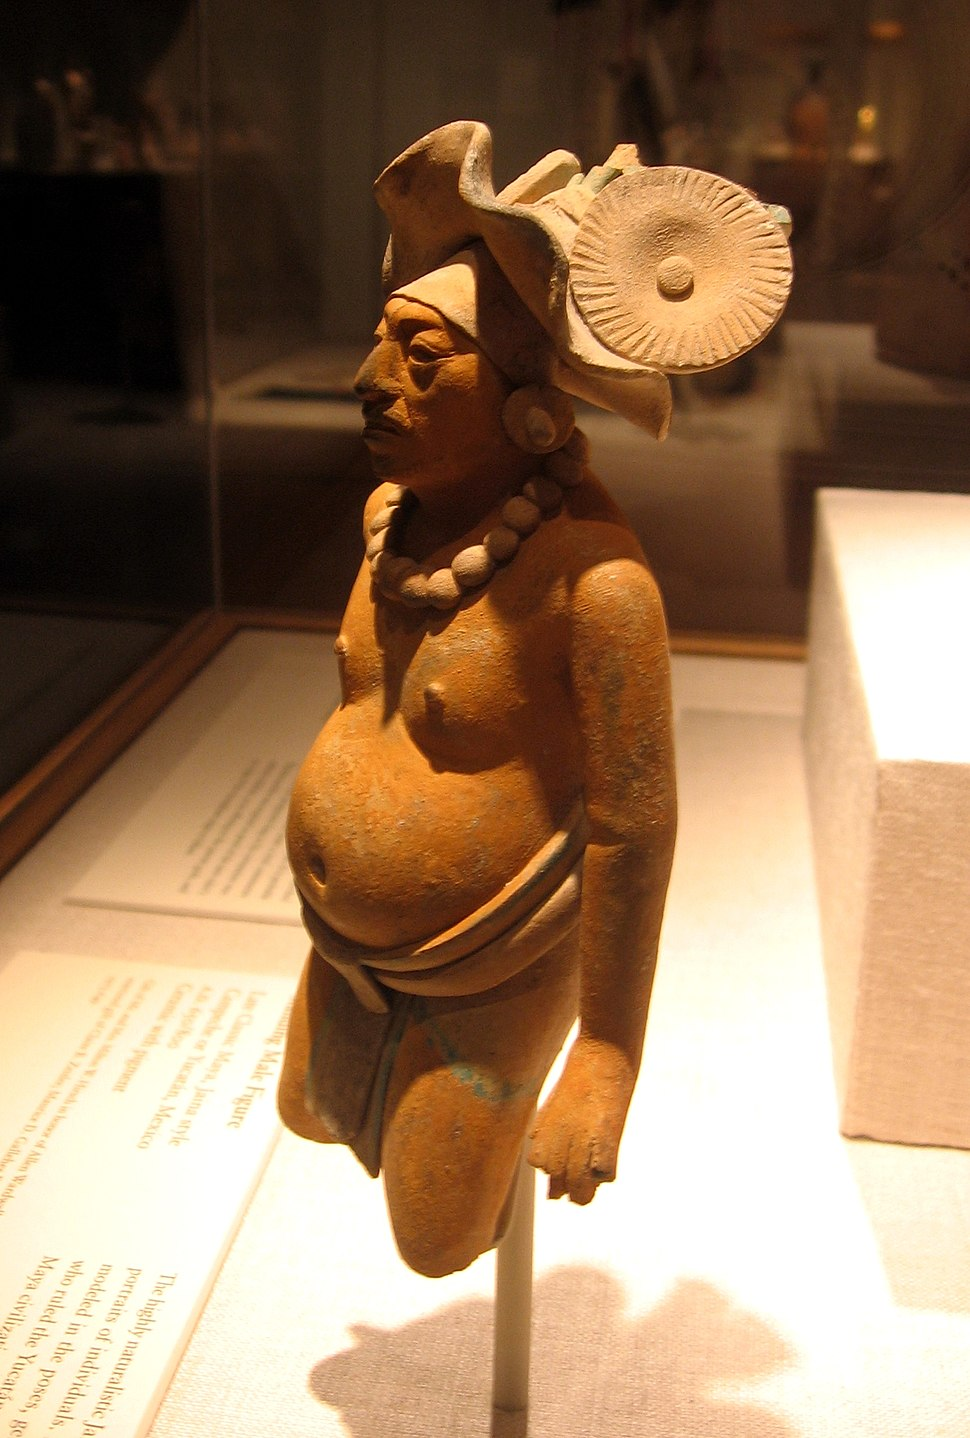 Jaina Island type figure, Art Institute